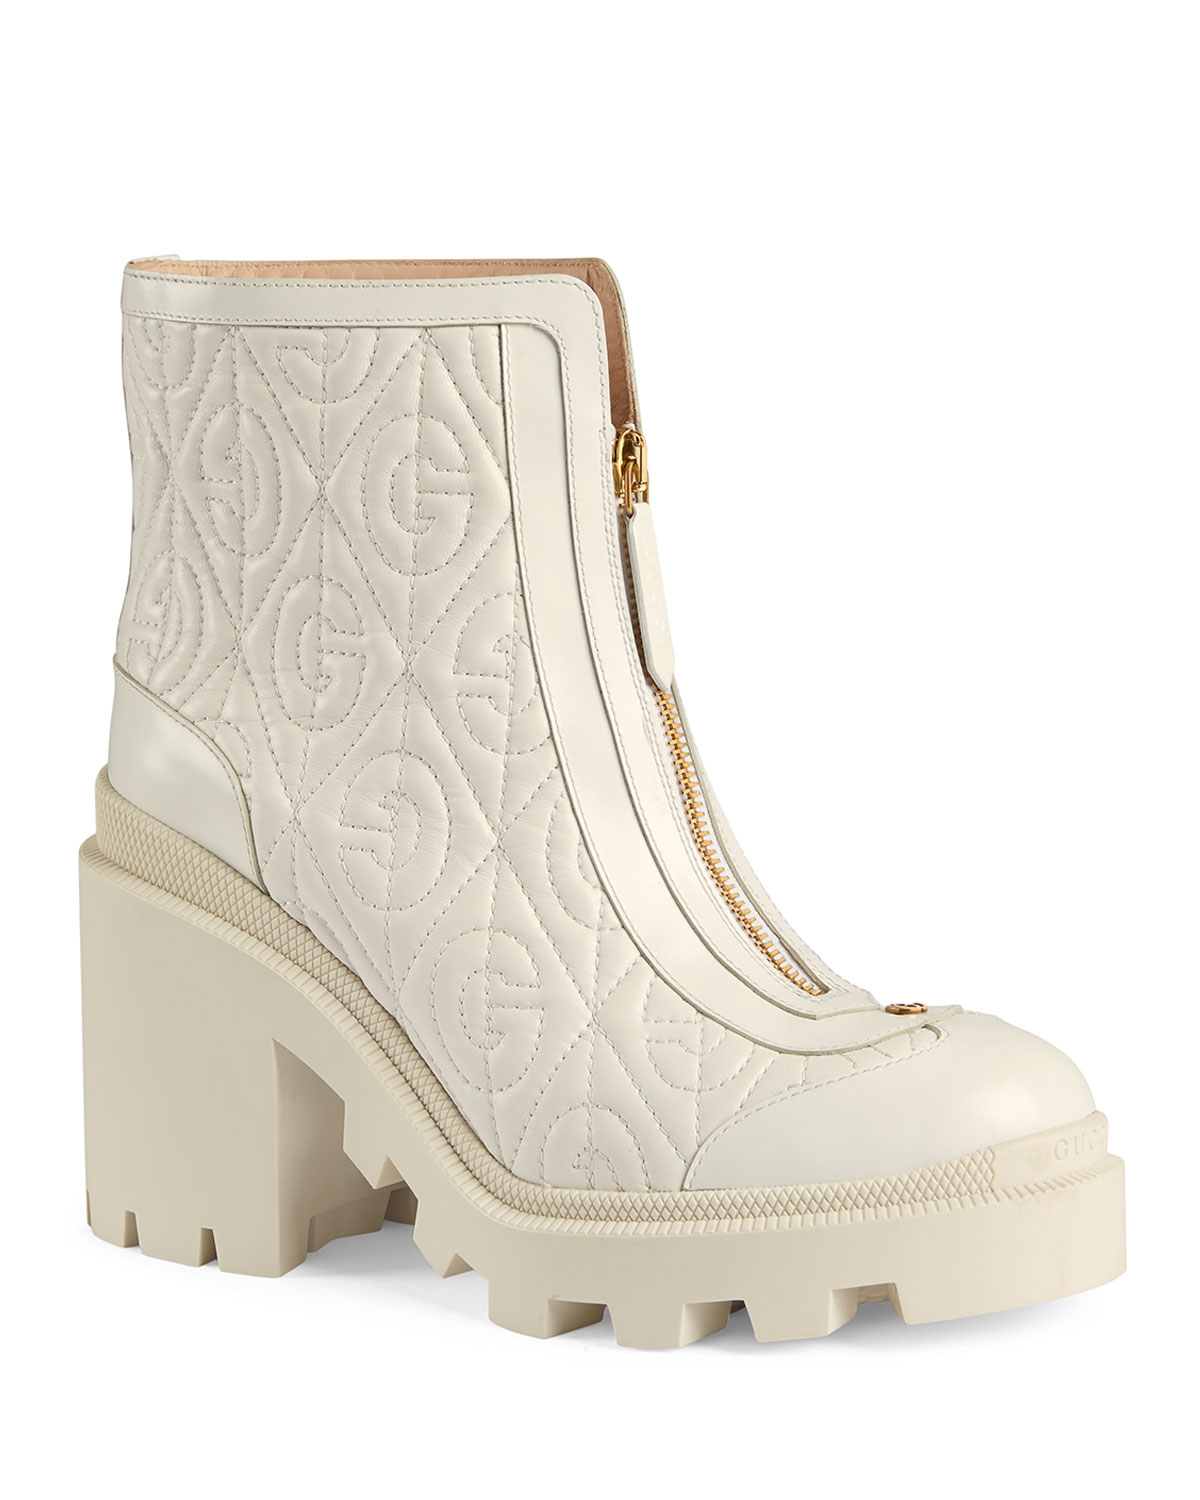 Gucci Boots TRIP 70MM QUILTED LEATHER BOOTIES